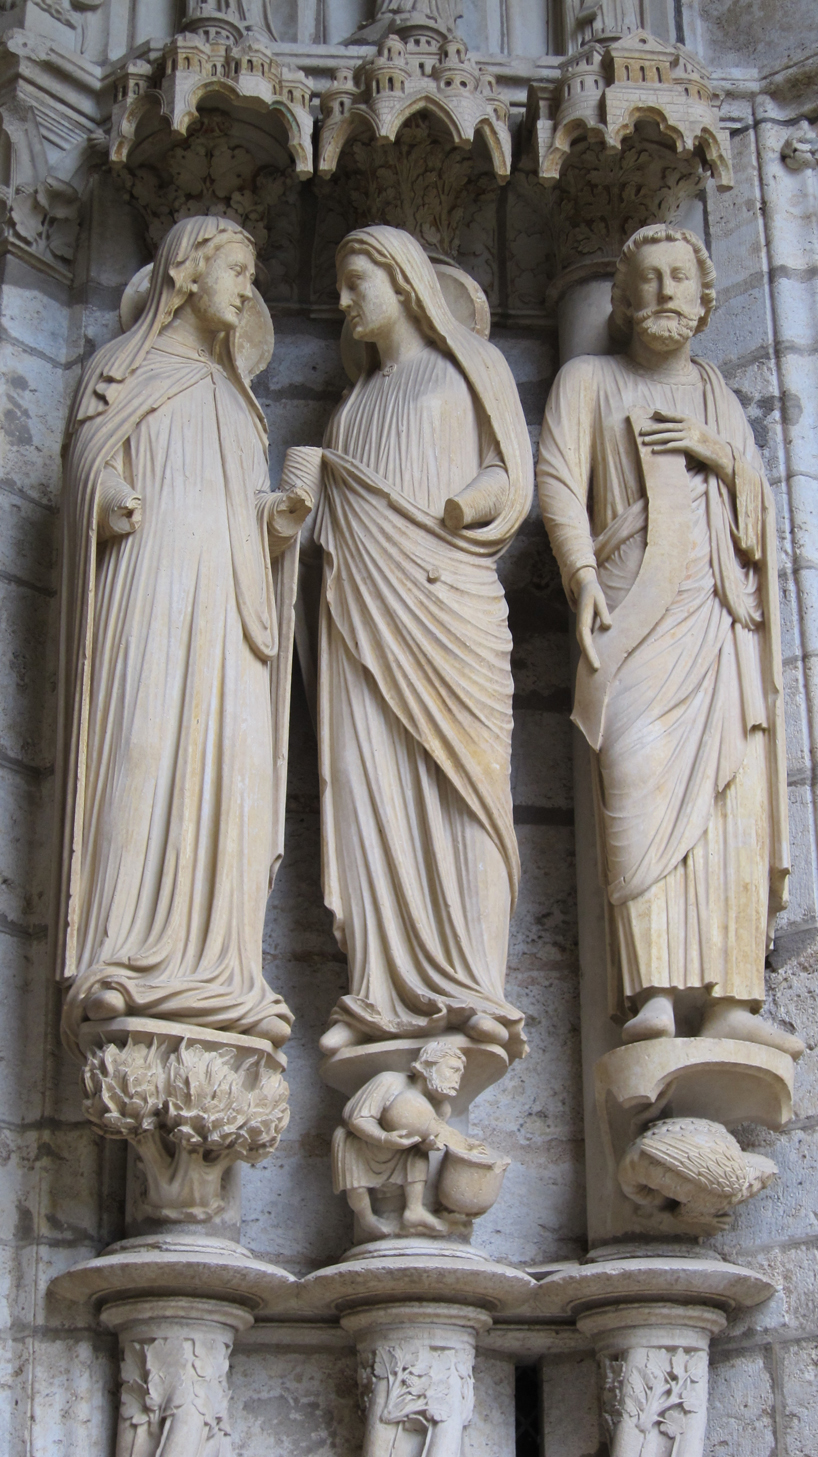 Compare well with Paris Notre Dame - Chartres Cathedral